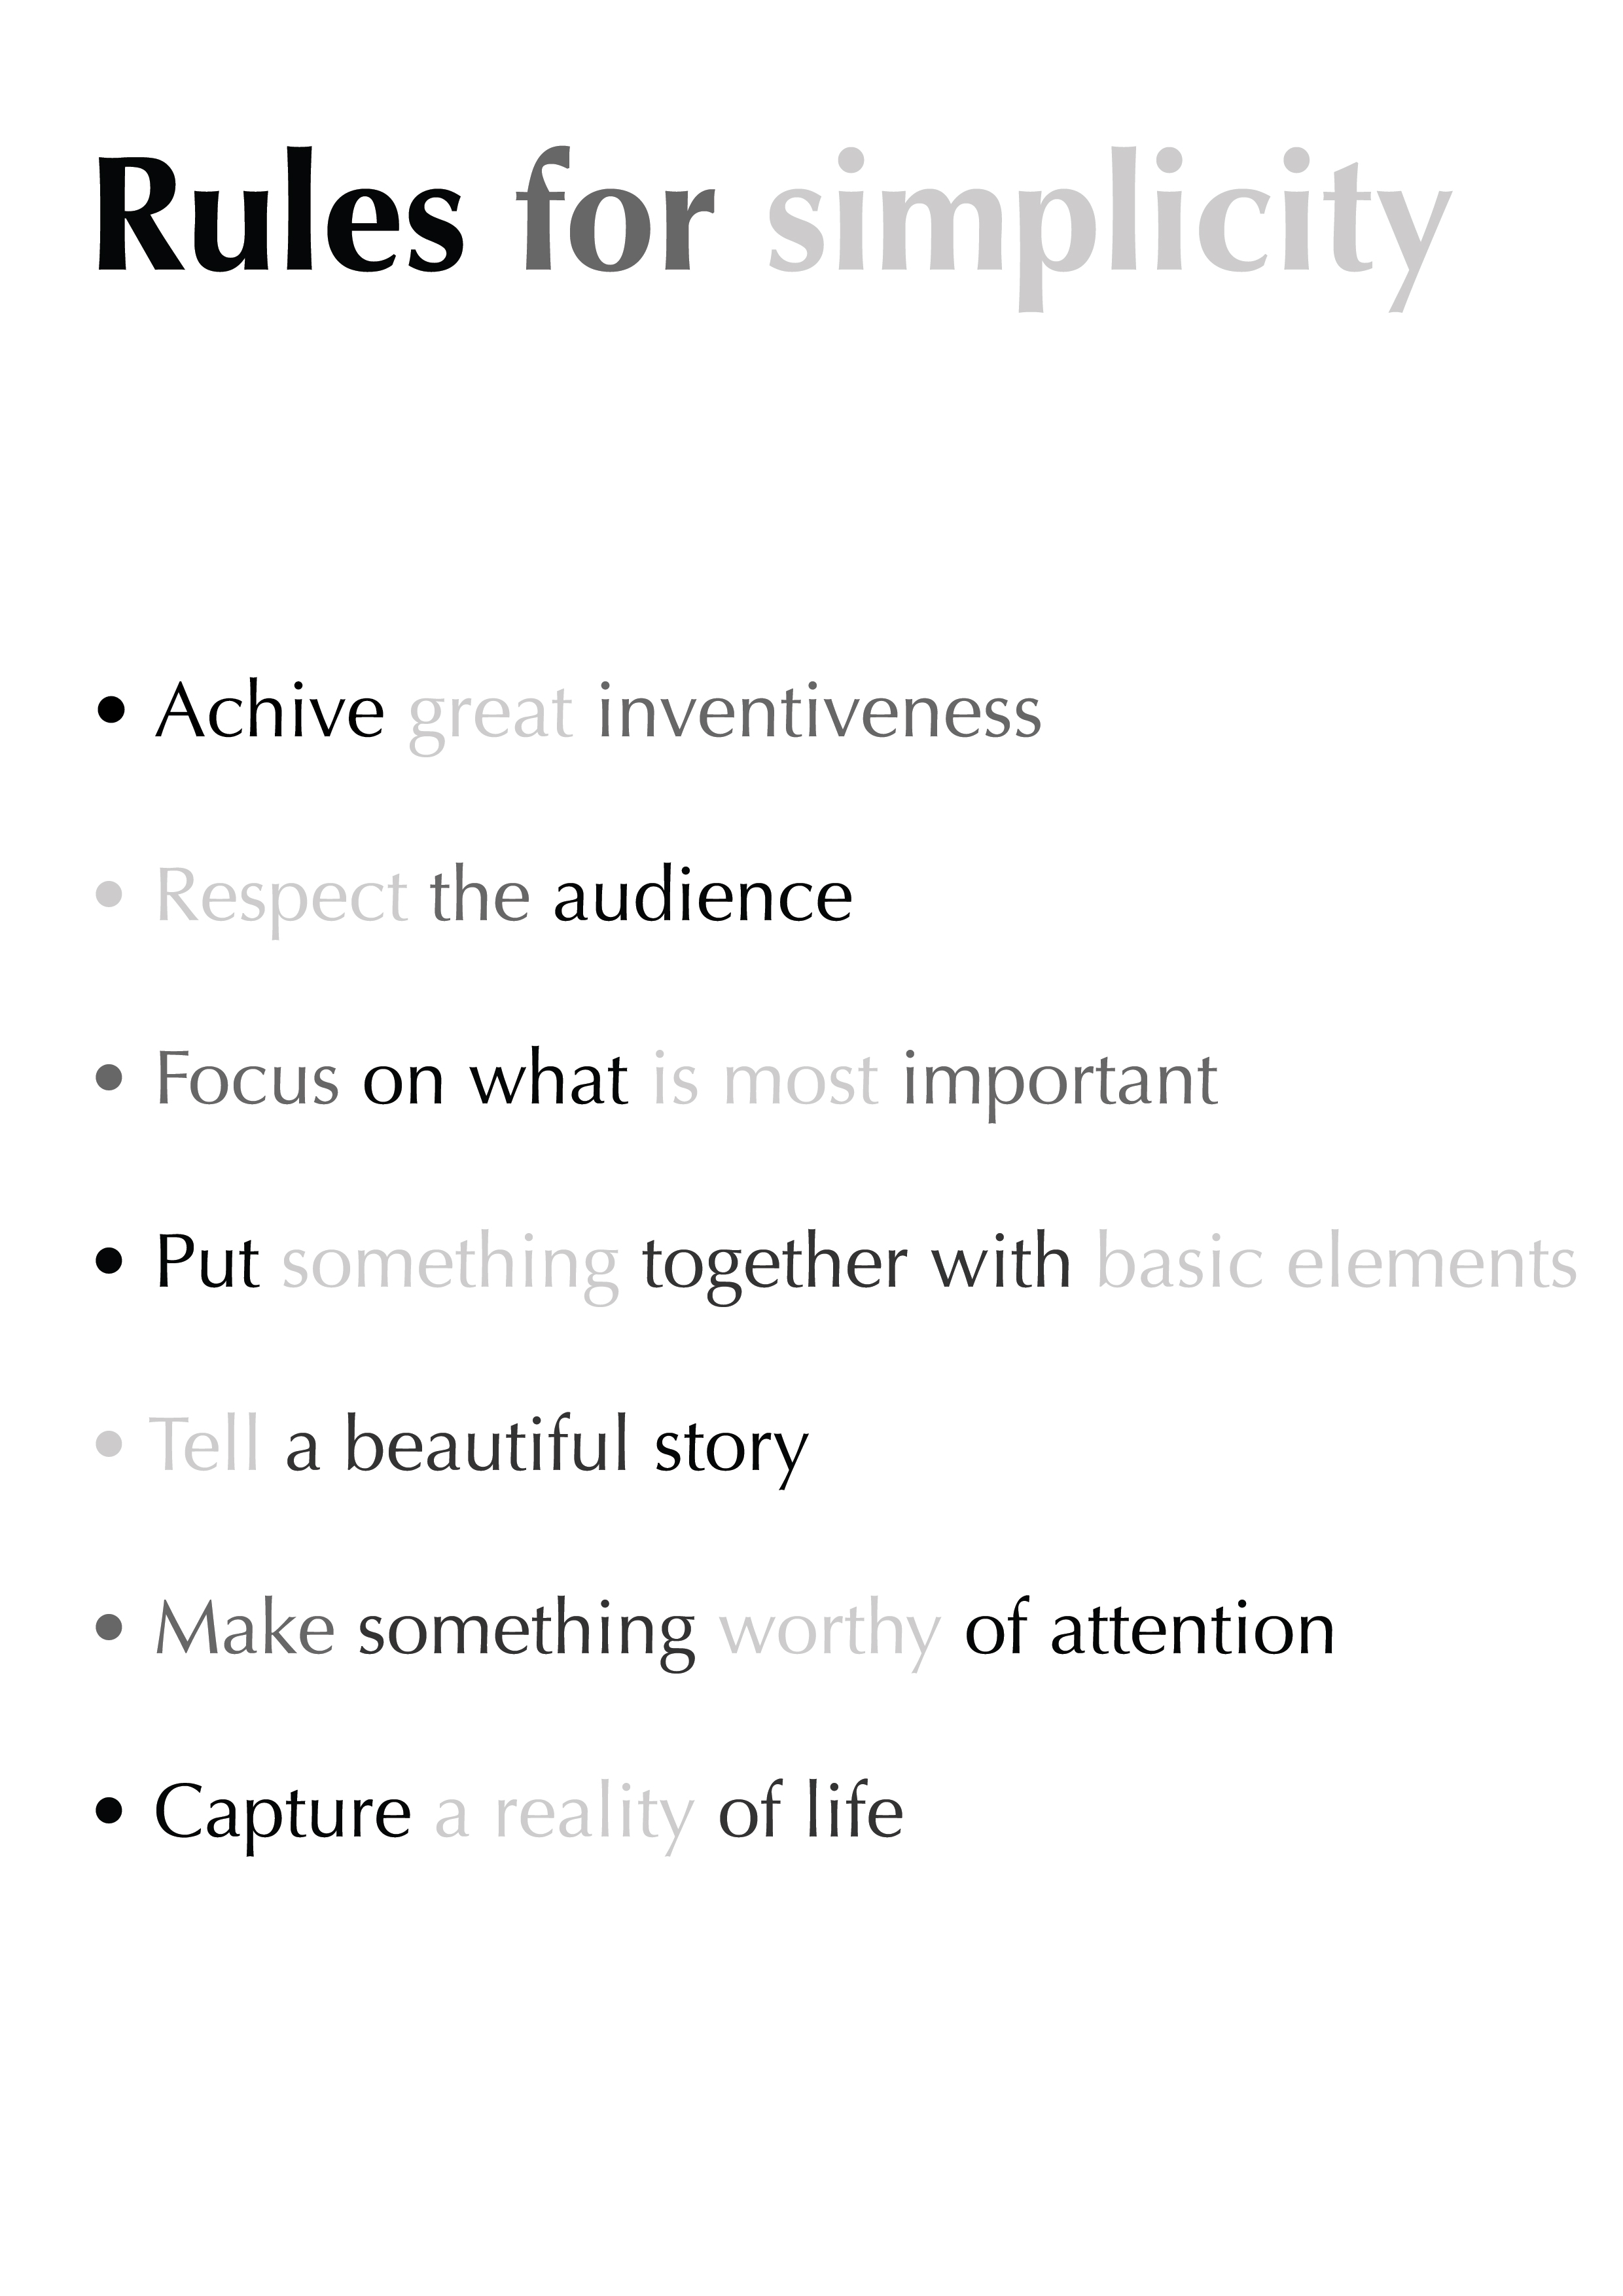 Rules for simplicity